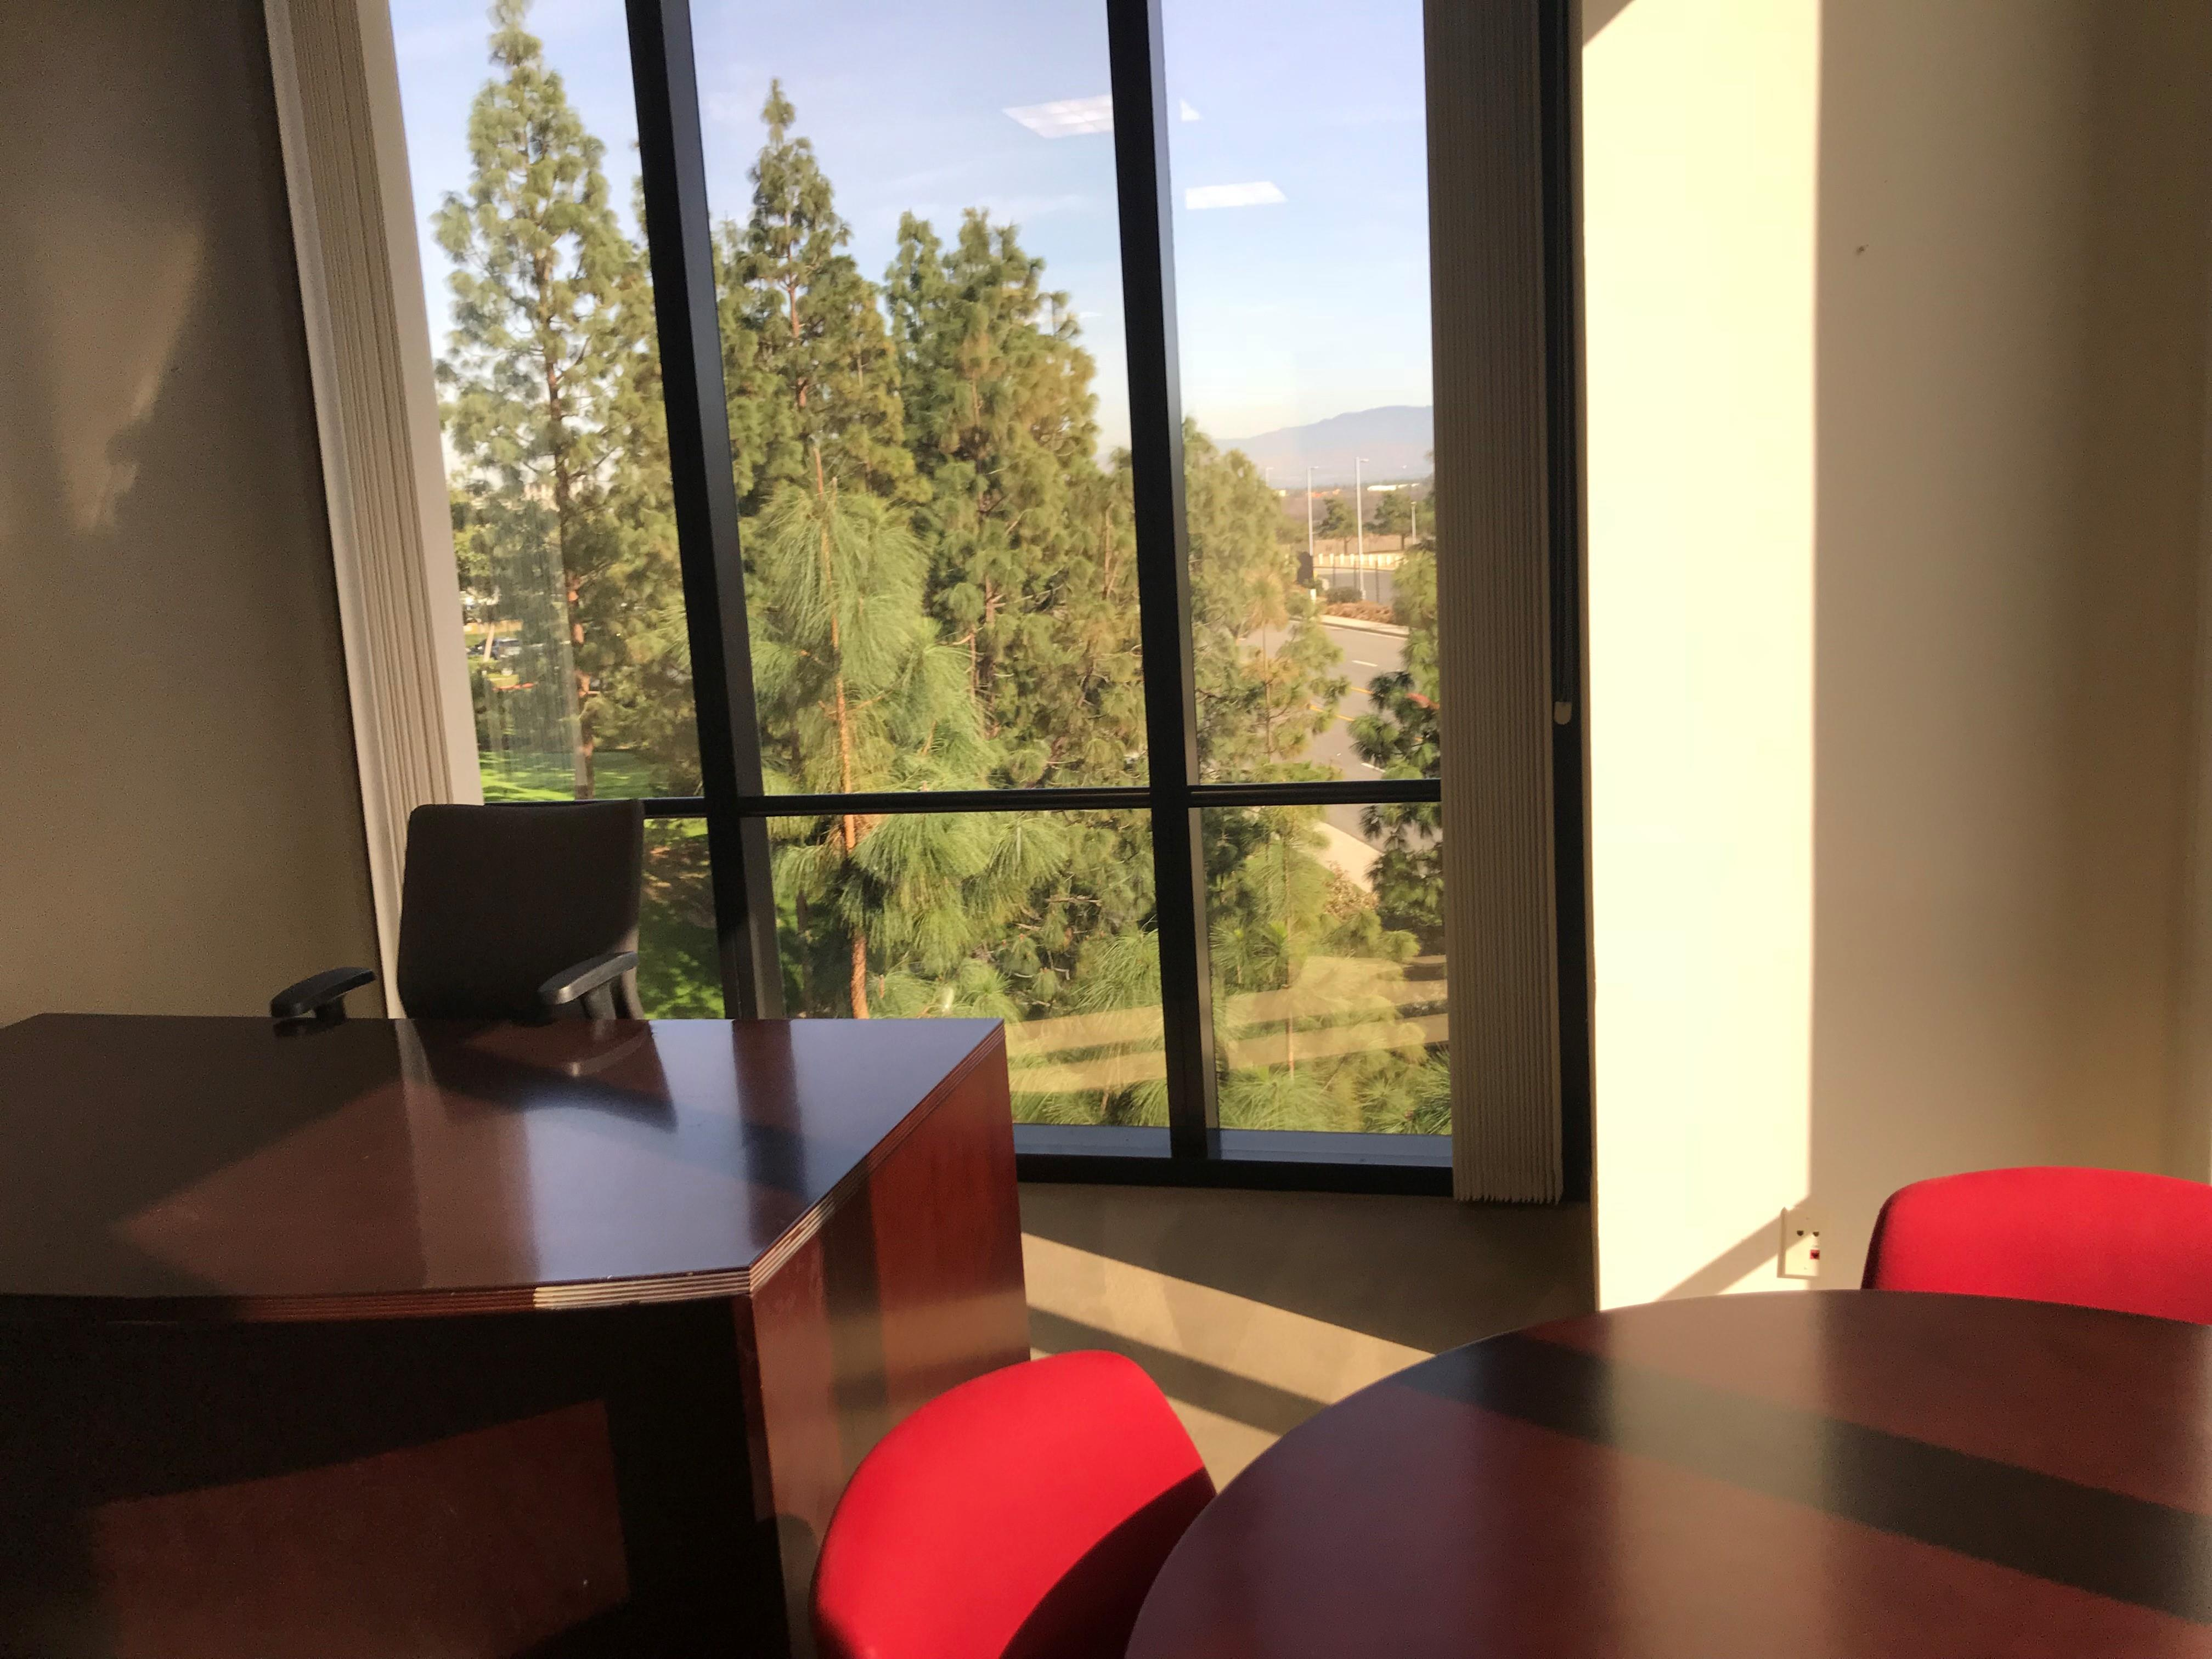 Newport Gateway - Suite #280 - Corner Office with 2 Glass Walls